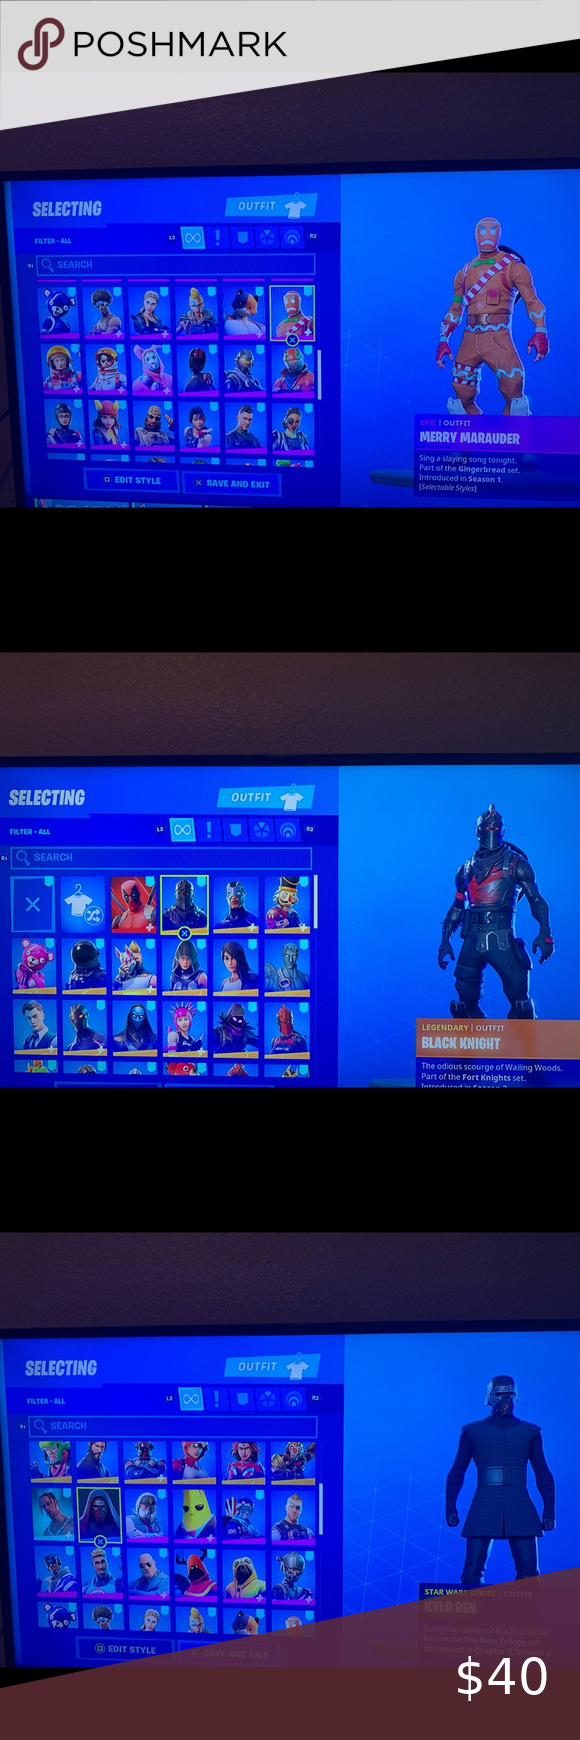 Fortnite Account I Don T Use Anymore I M Done With Fortnite Game Is Mad Boring Now And Don T Wanna Just Have My Accoun Fortnite Things To Sell Accounting